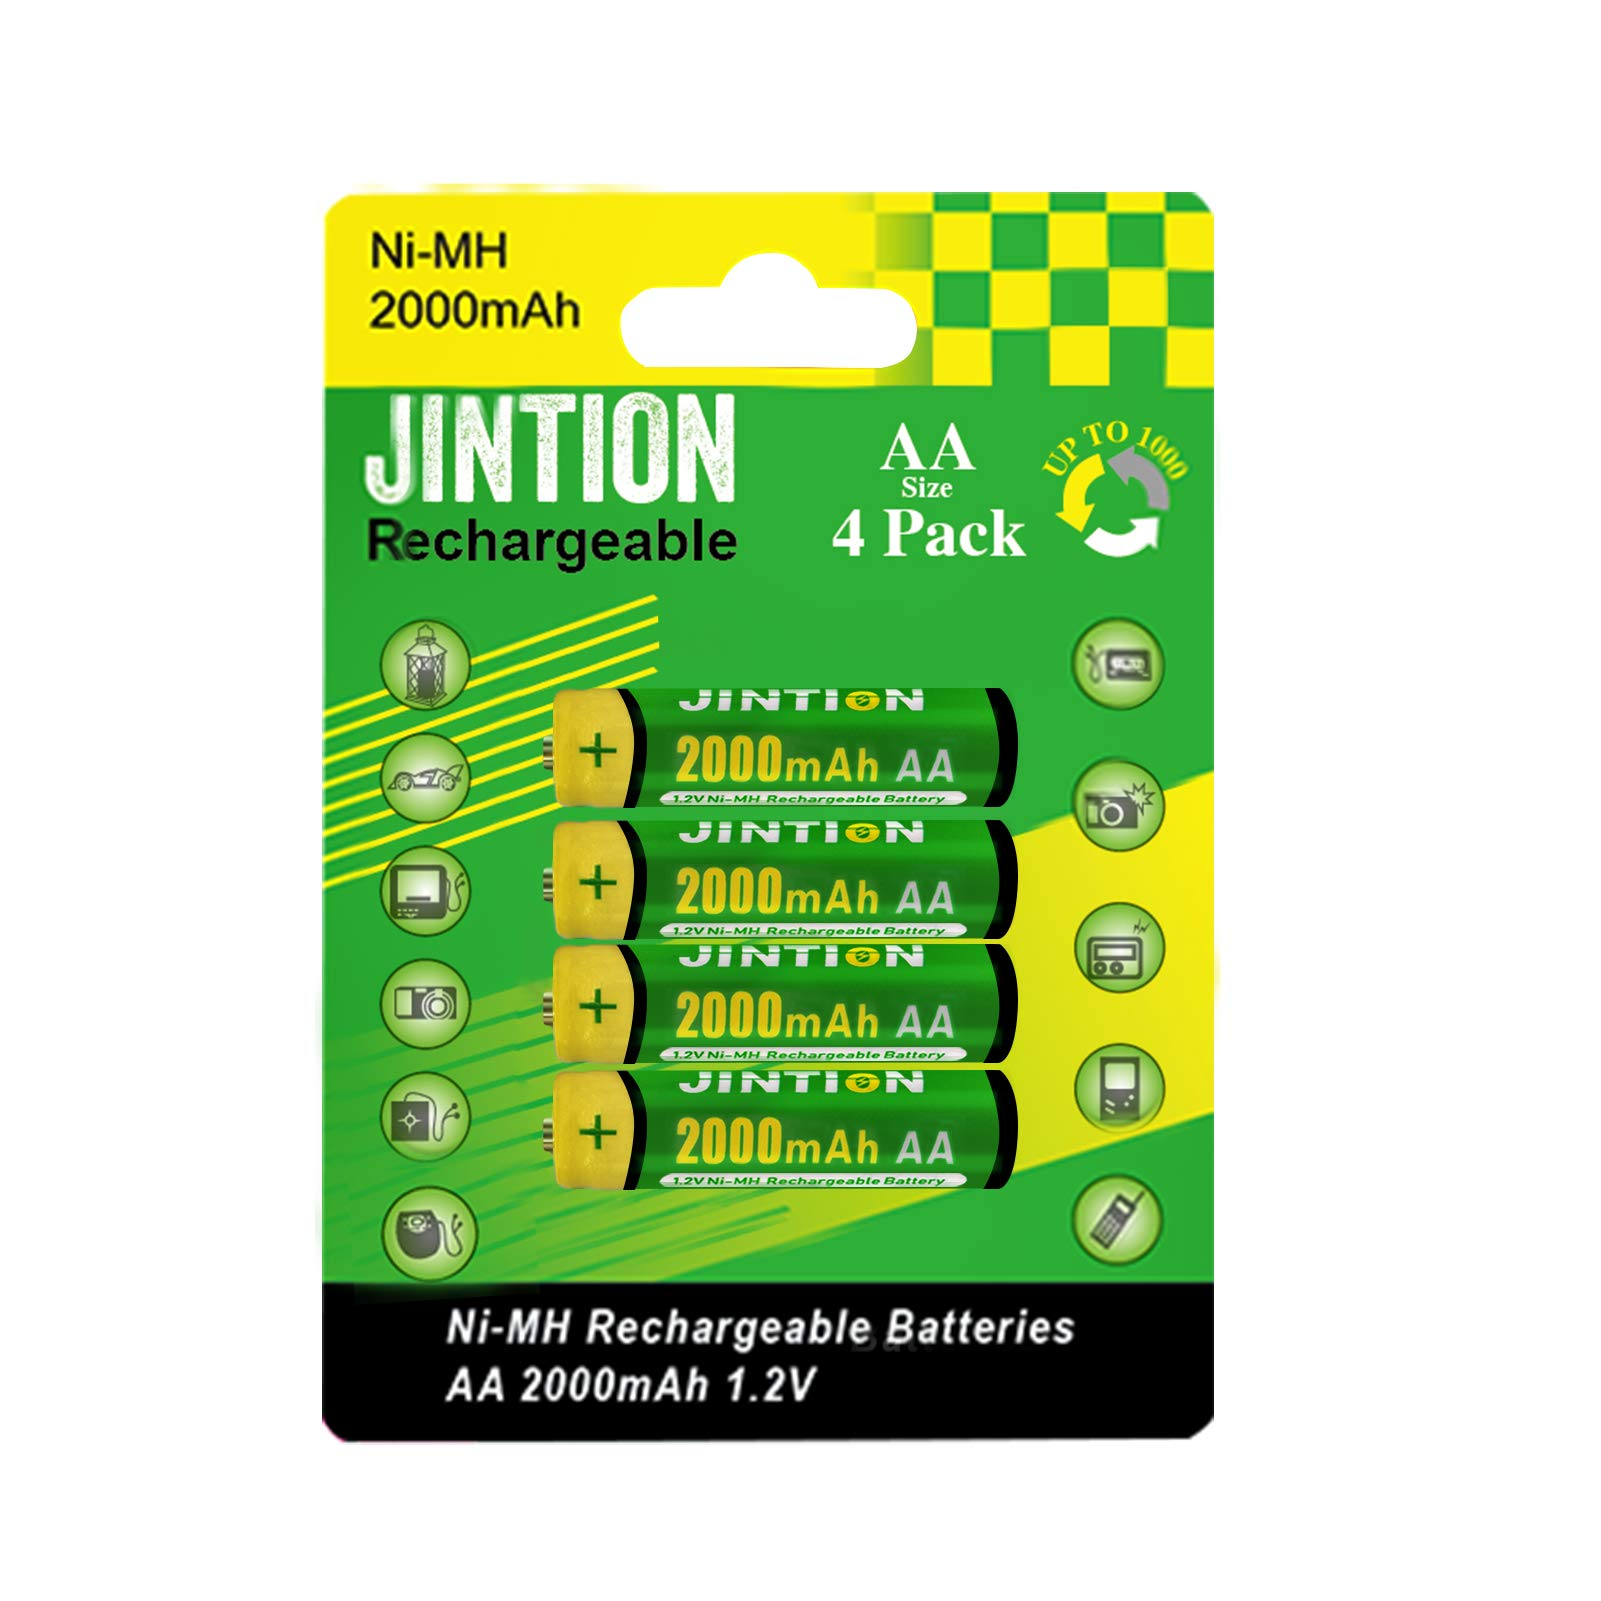 JINTION Rechargeable AA Batteries 4 Pack 2000mAh NiMh 1.2V AA Batteries high